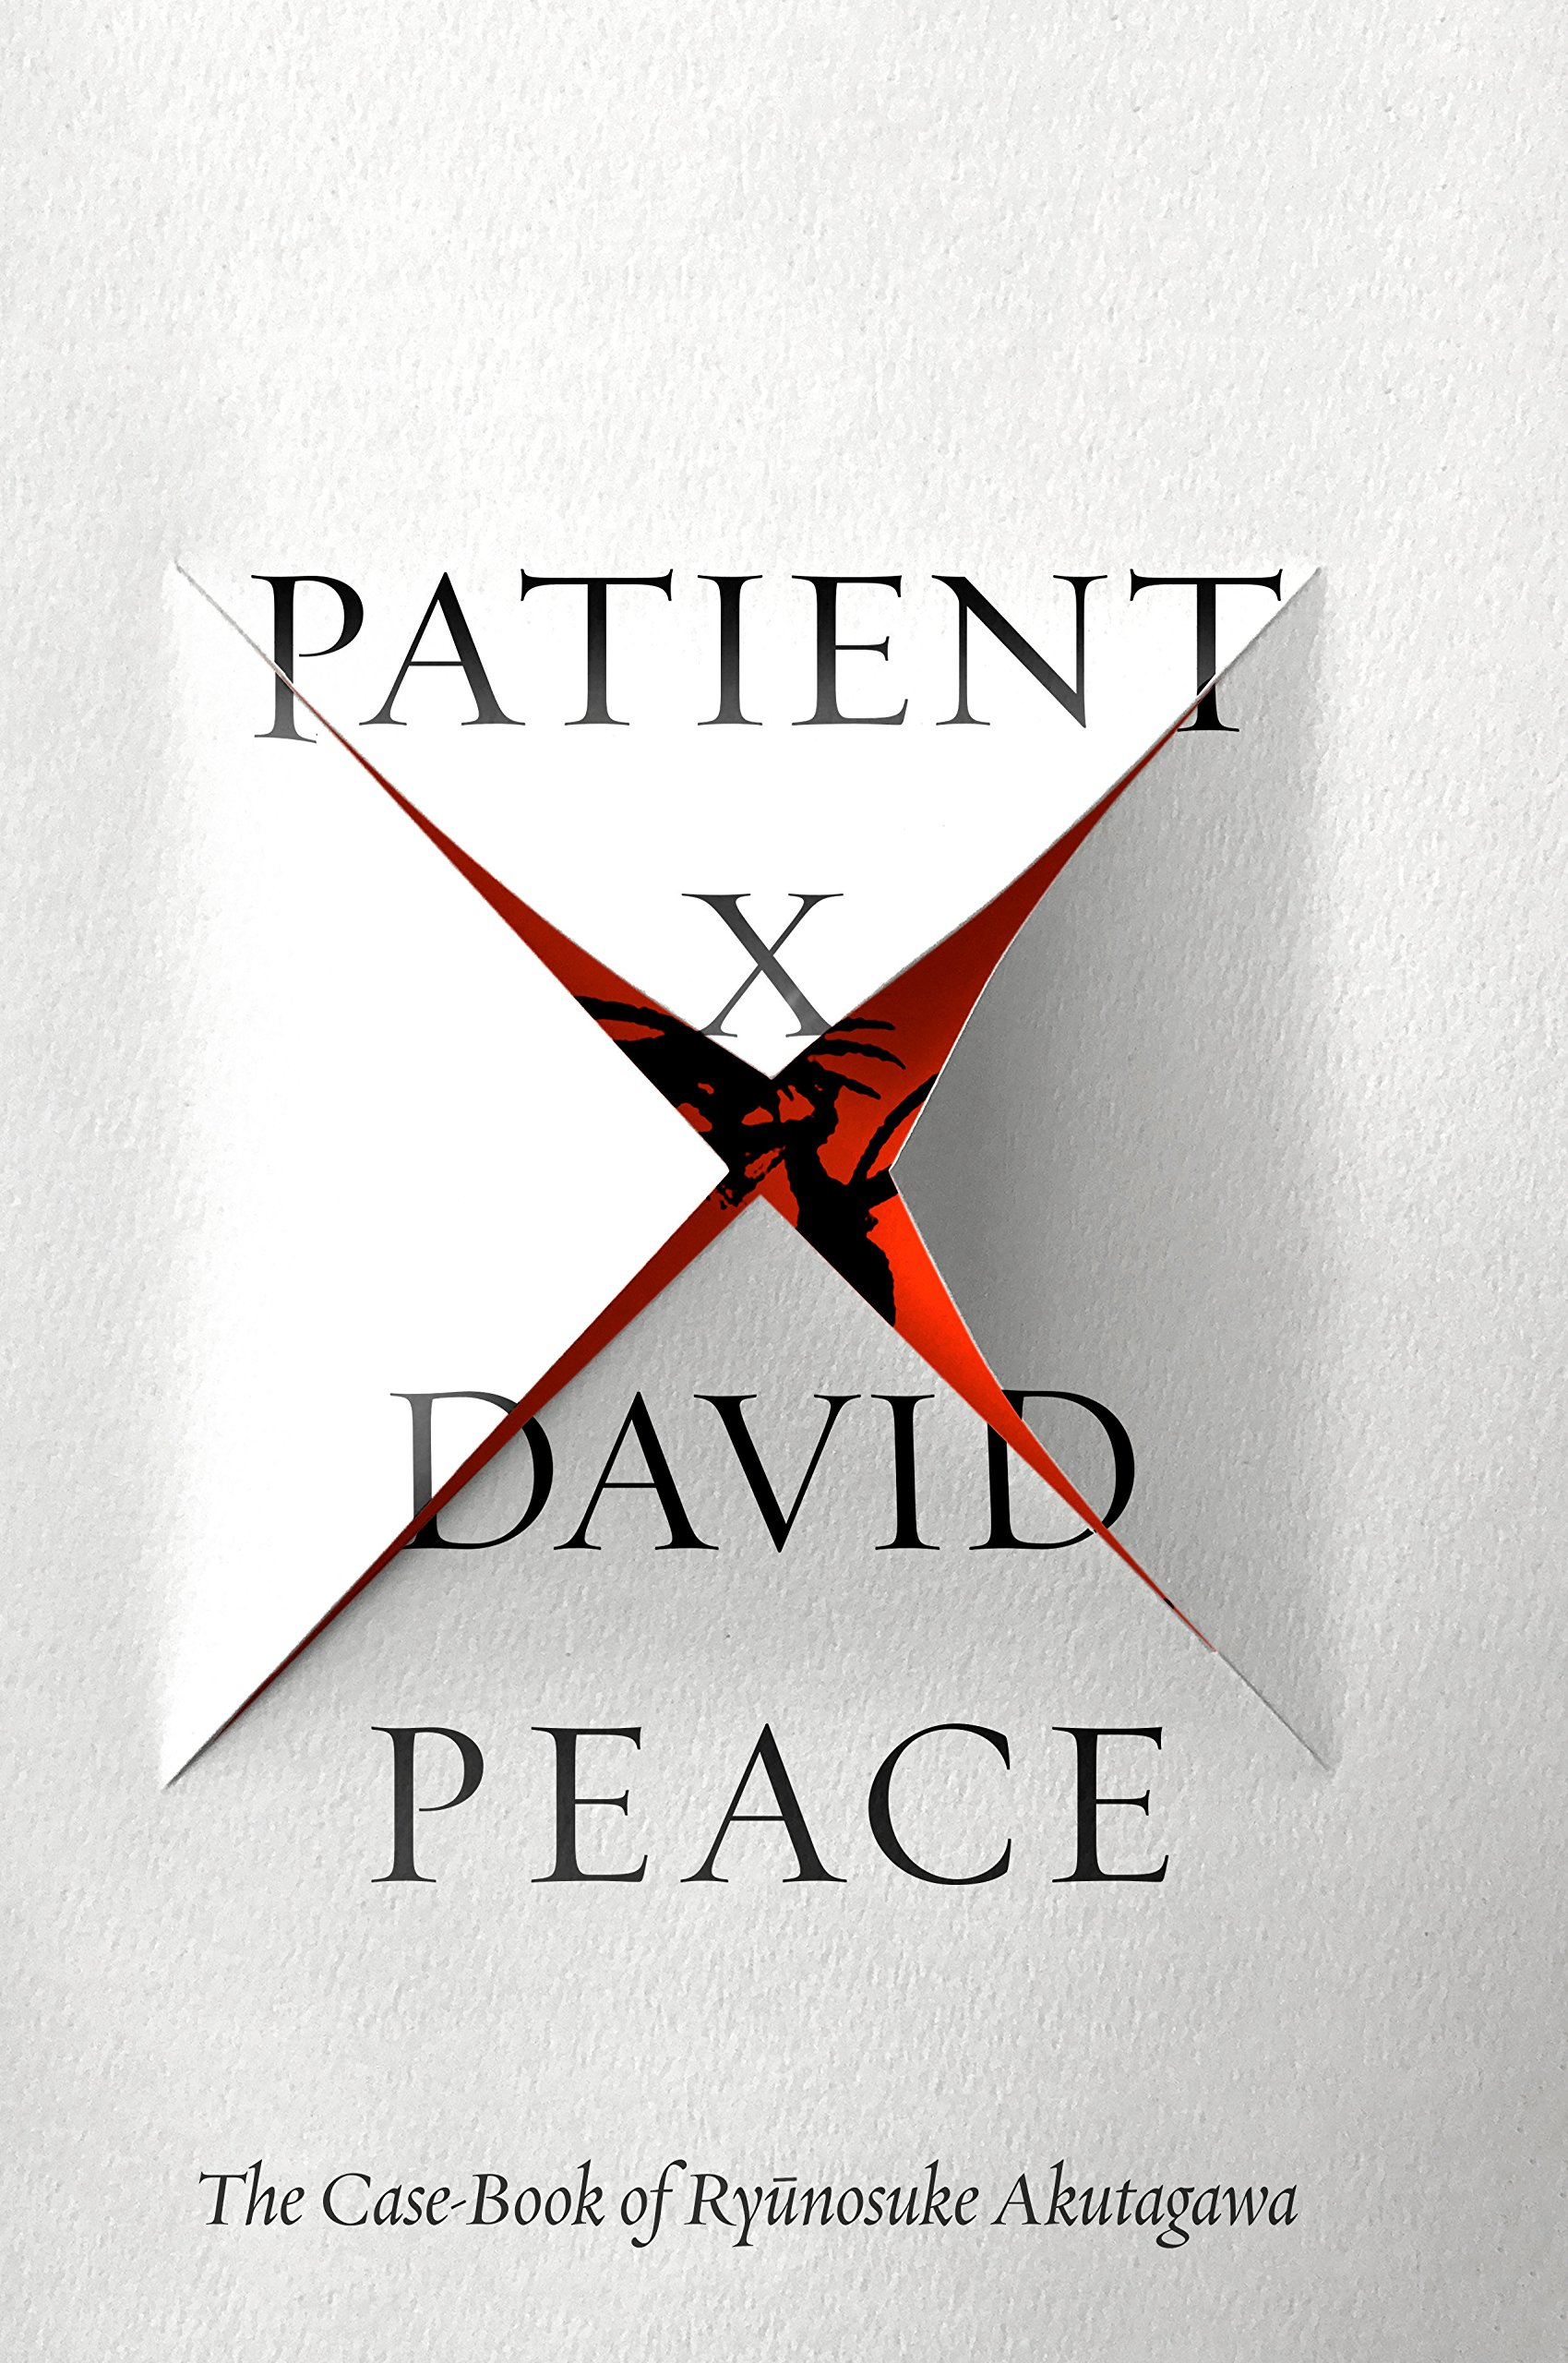 David Peace, <em>Patient X</em>, design by Tyler Comrie (Knopf)